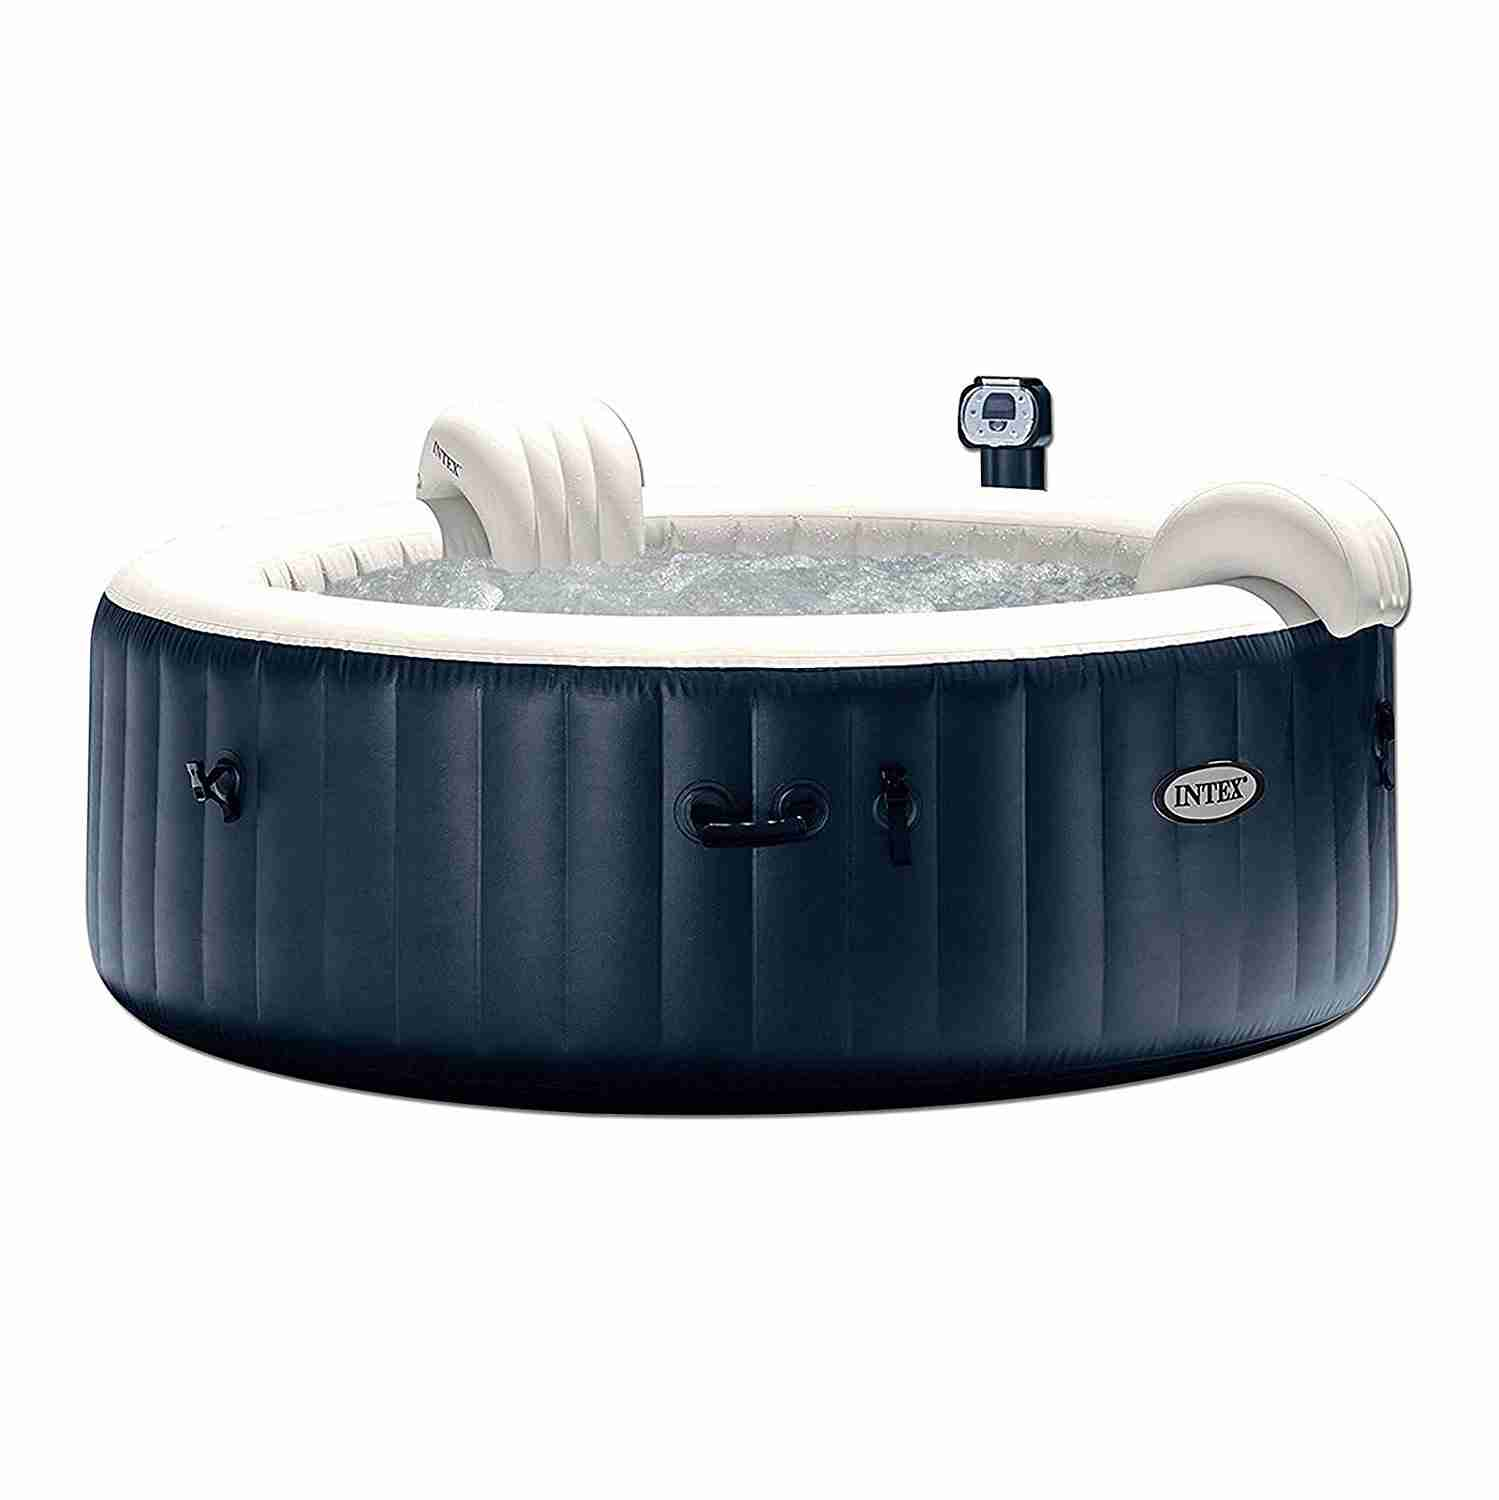 tubs spas caldera tub buy berkeley sale martinique hot for portable best heat